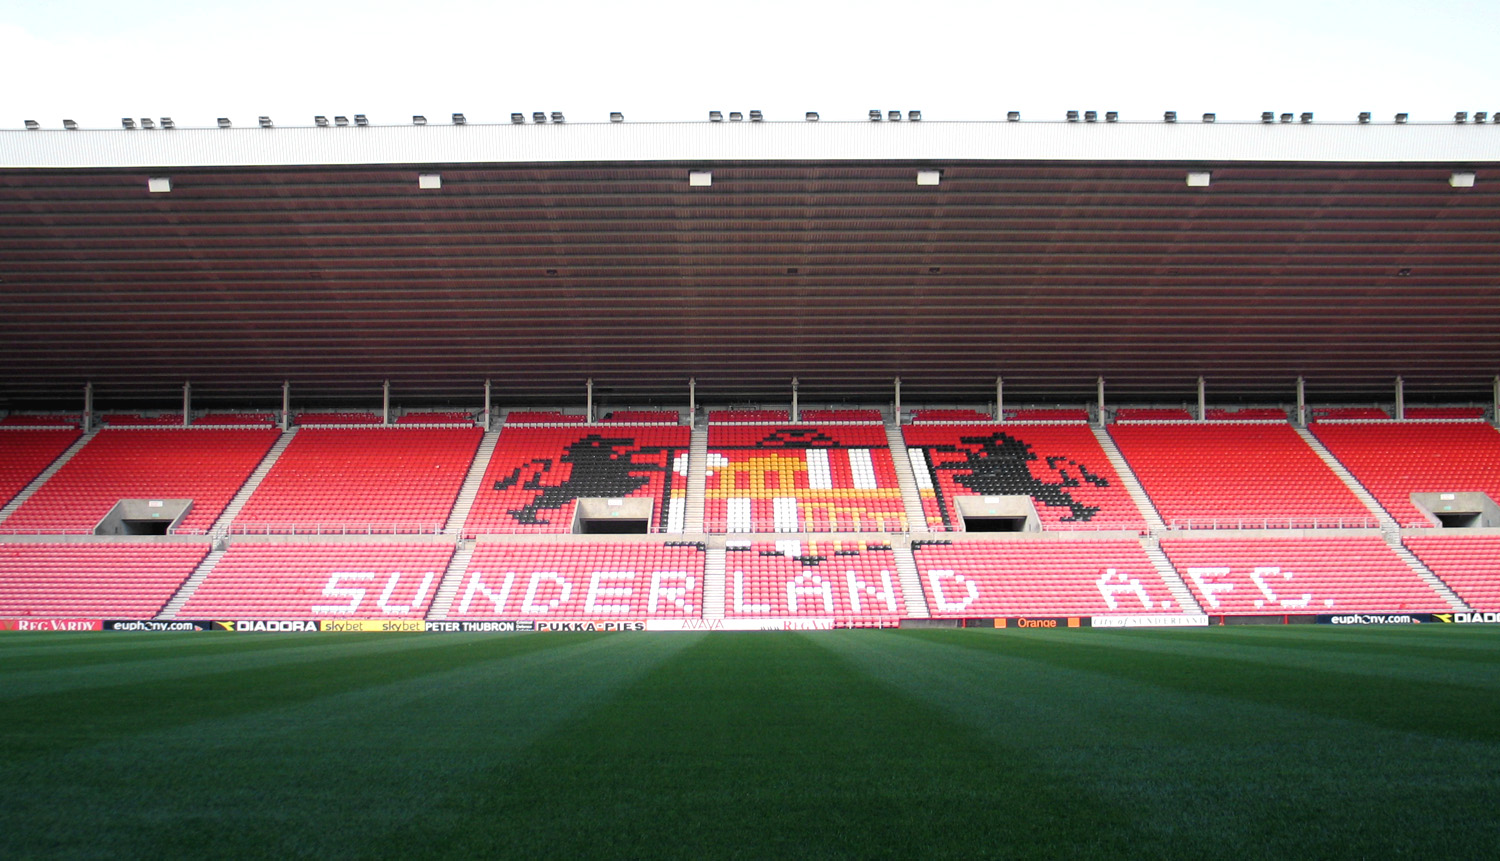 The Stadium of Light hosts this crucial encounter